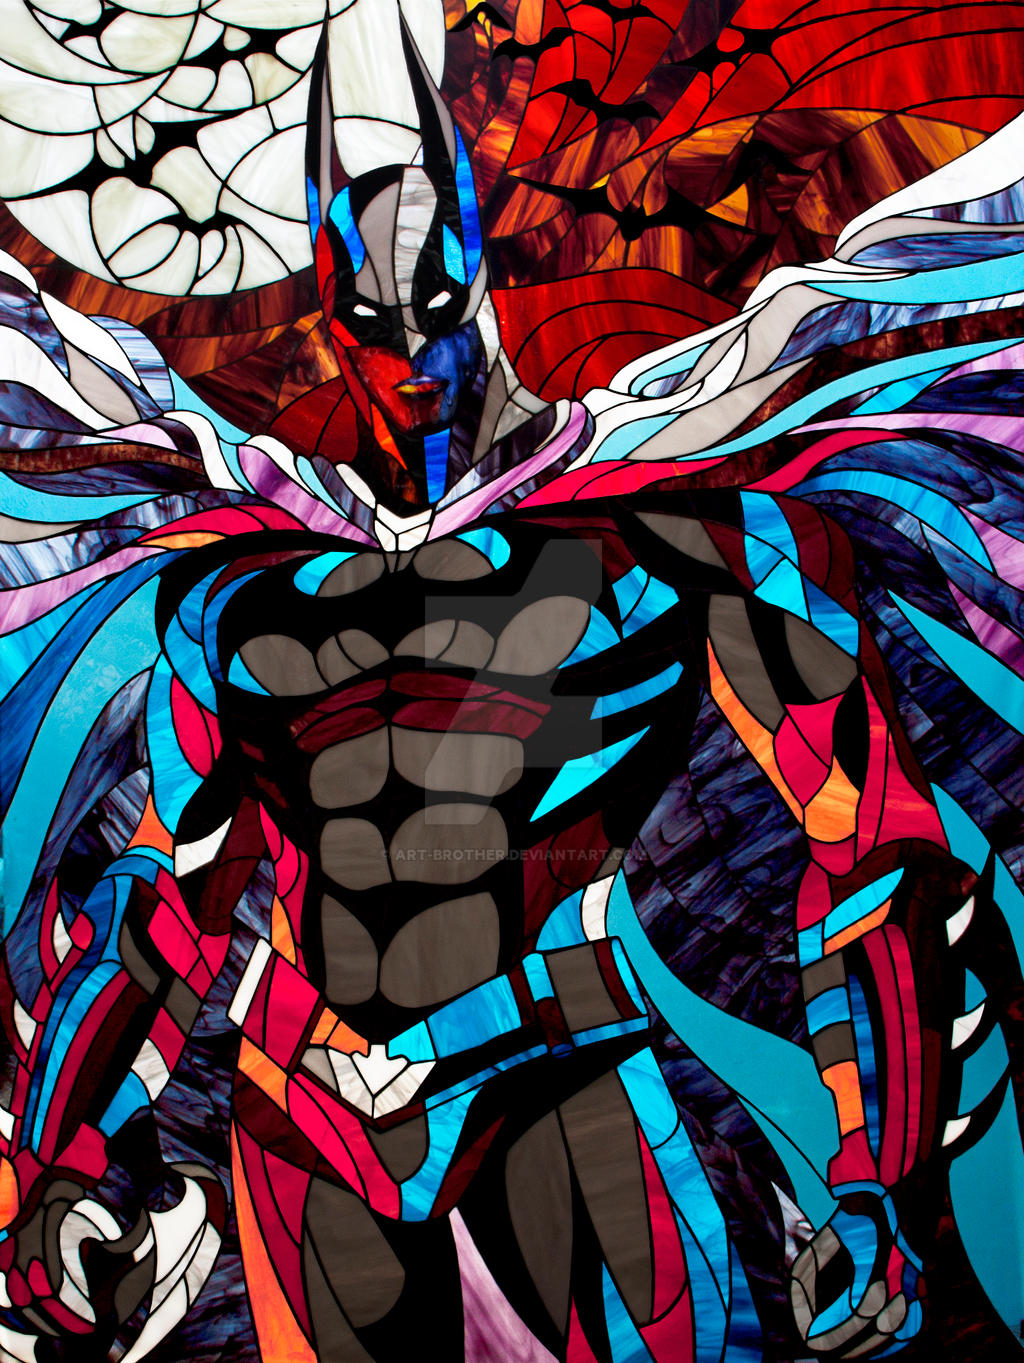 Stained Glass Art : Batman the dark knight photo stained glass by art brother